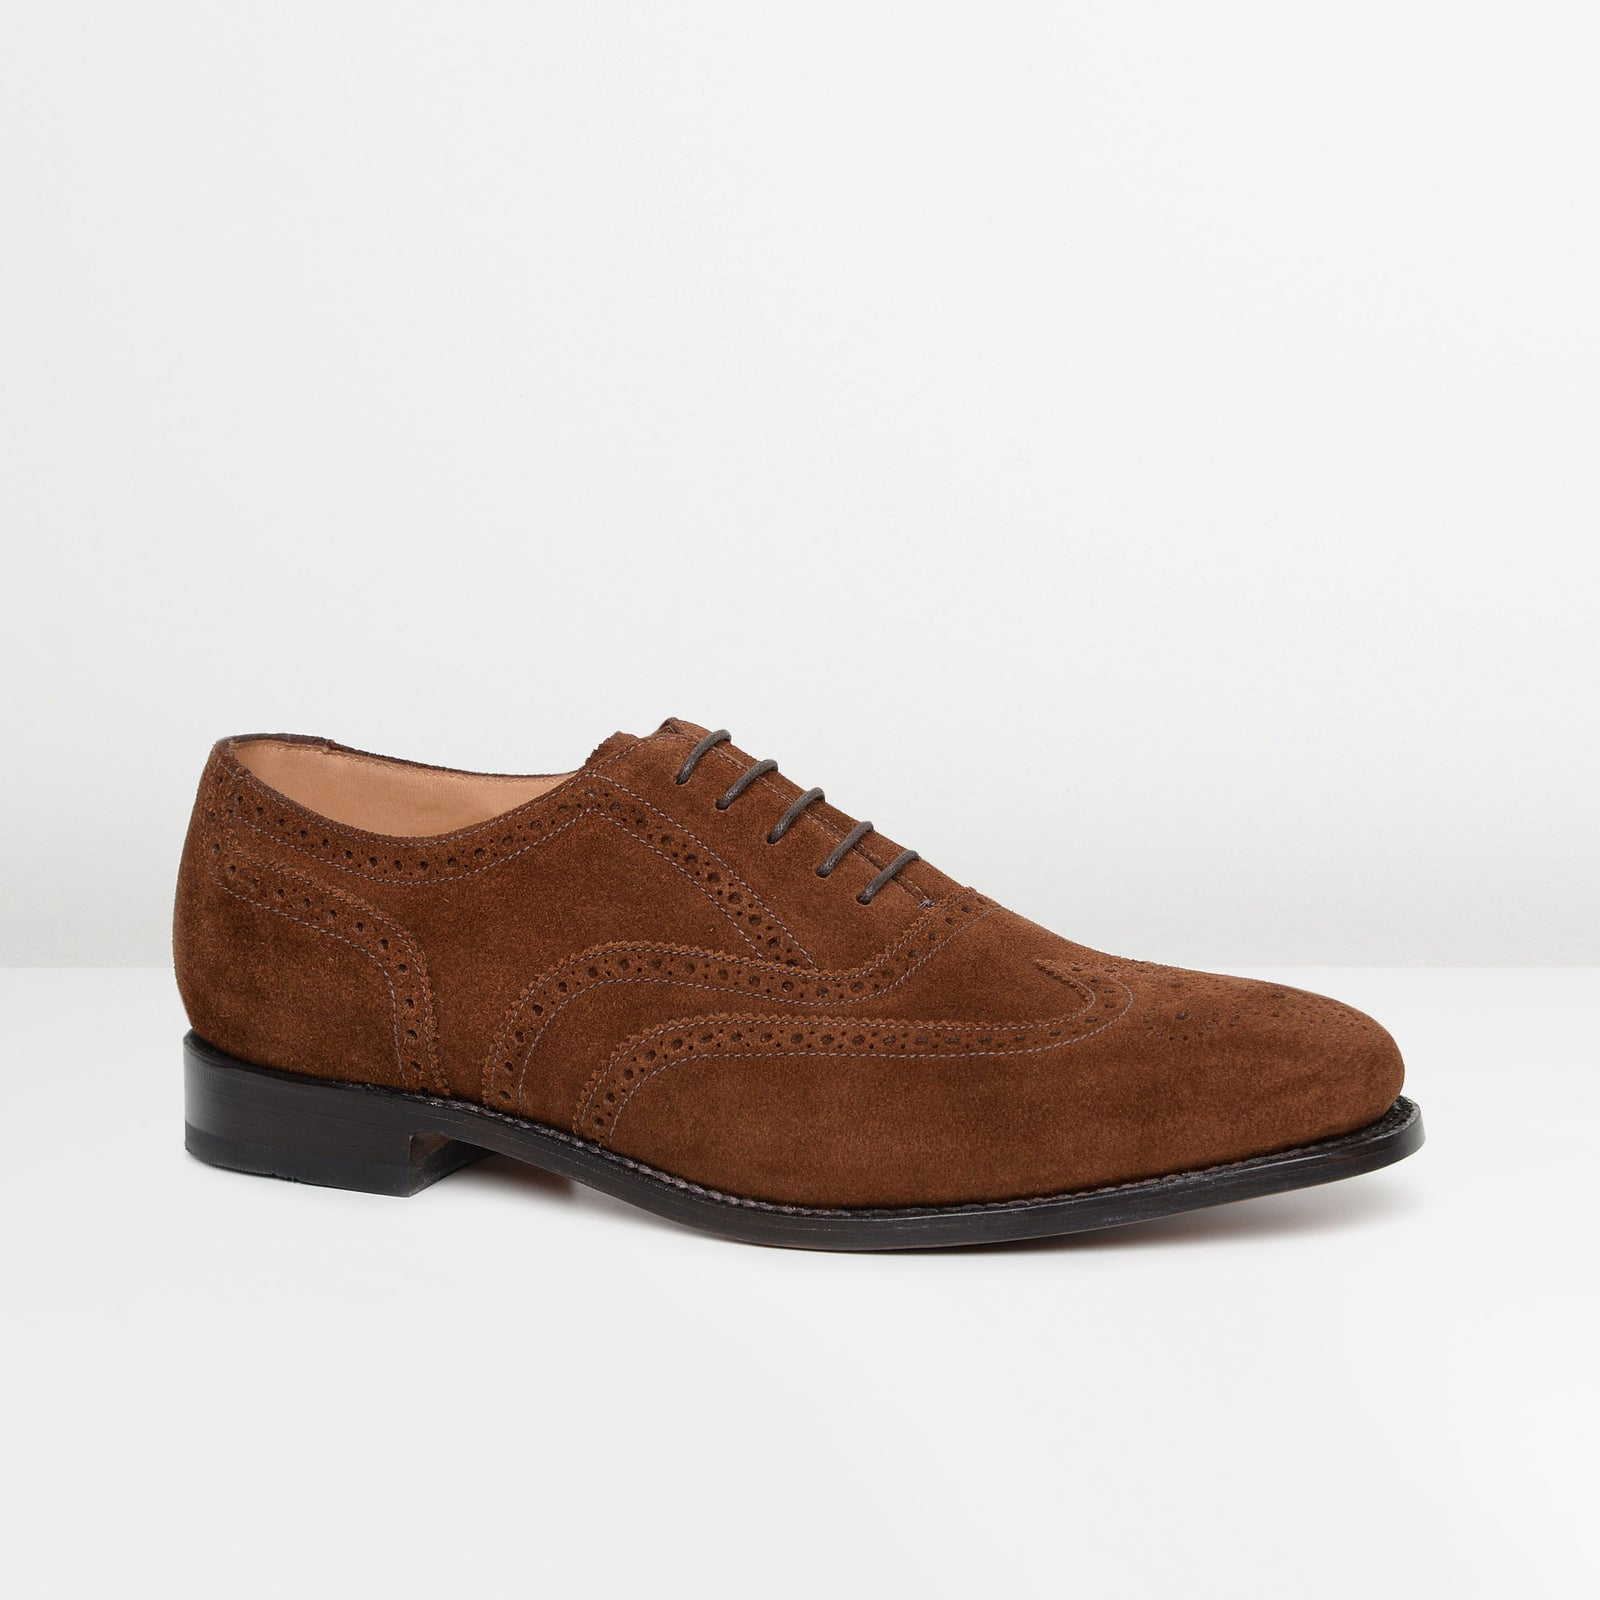 Brown Suede Luke 202 Oxford Brogues